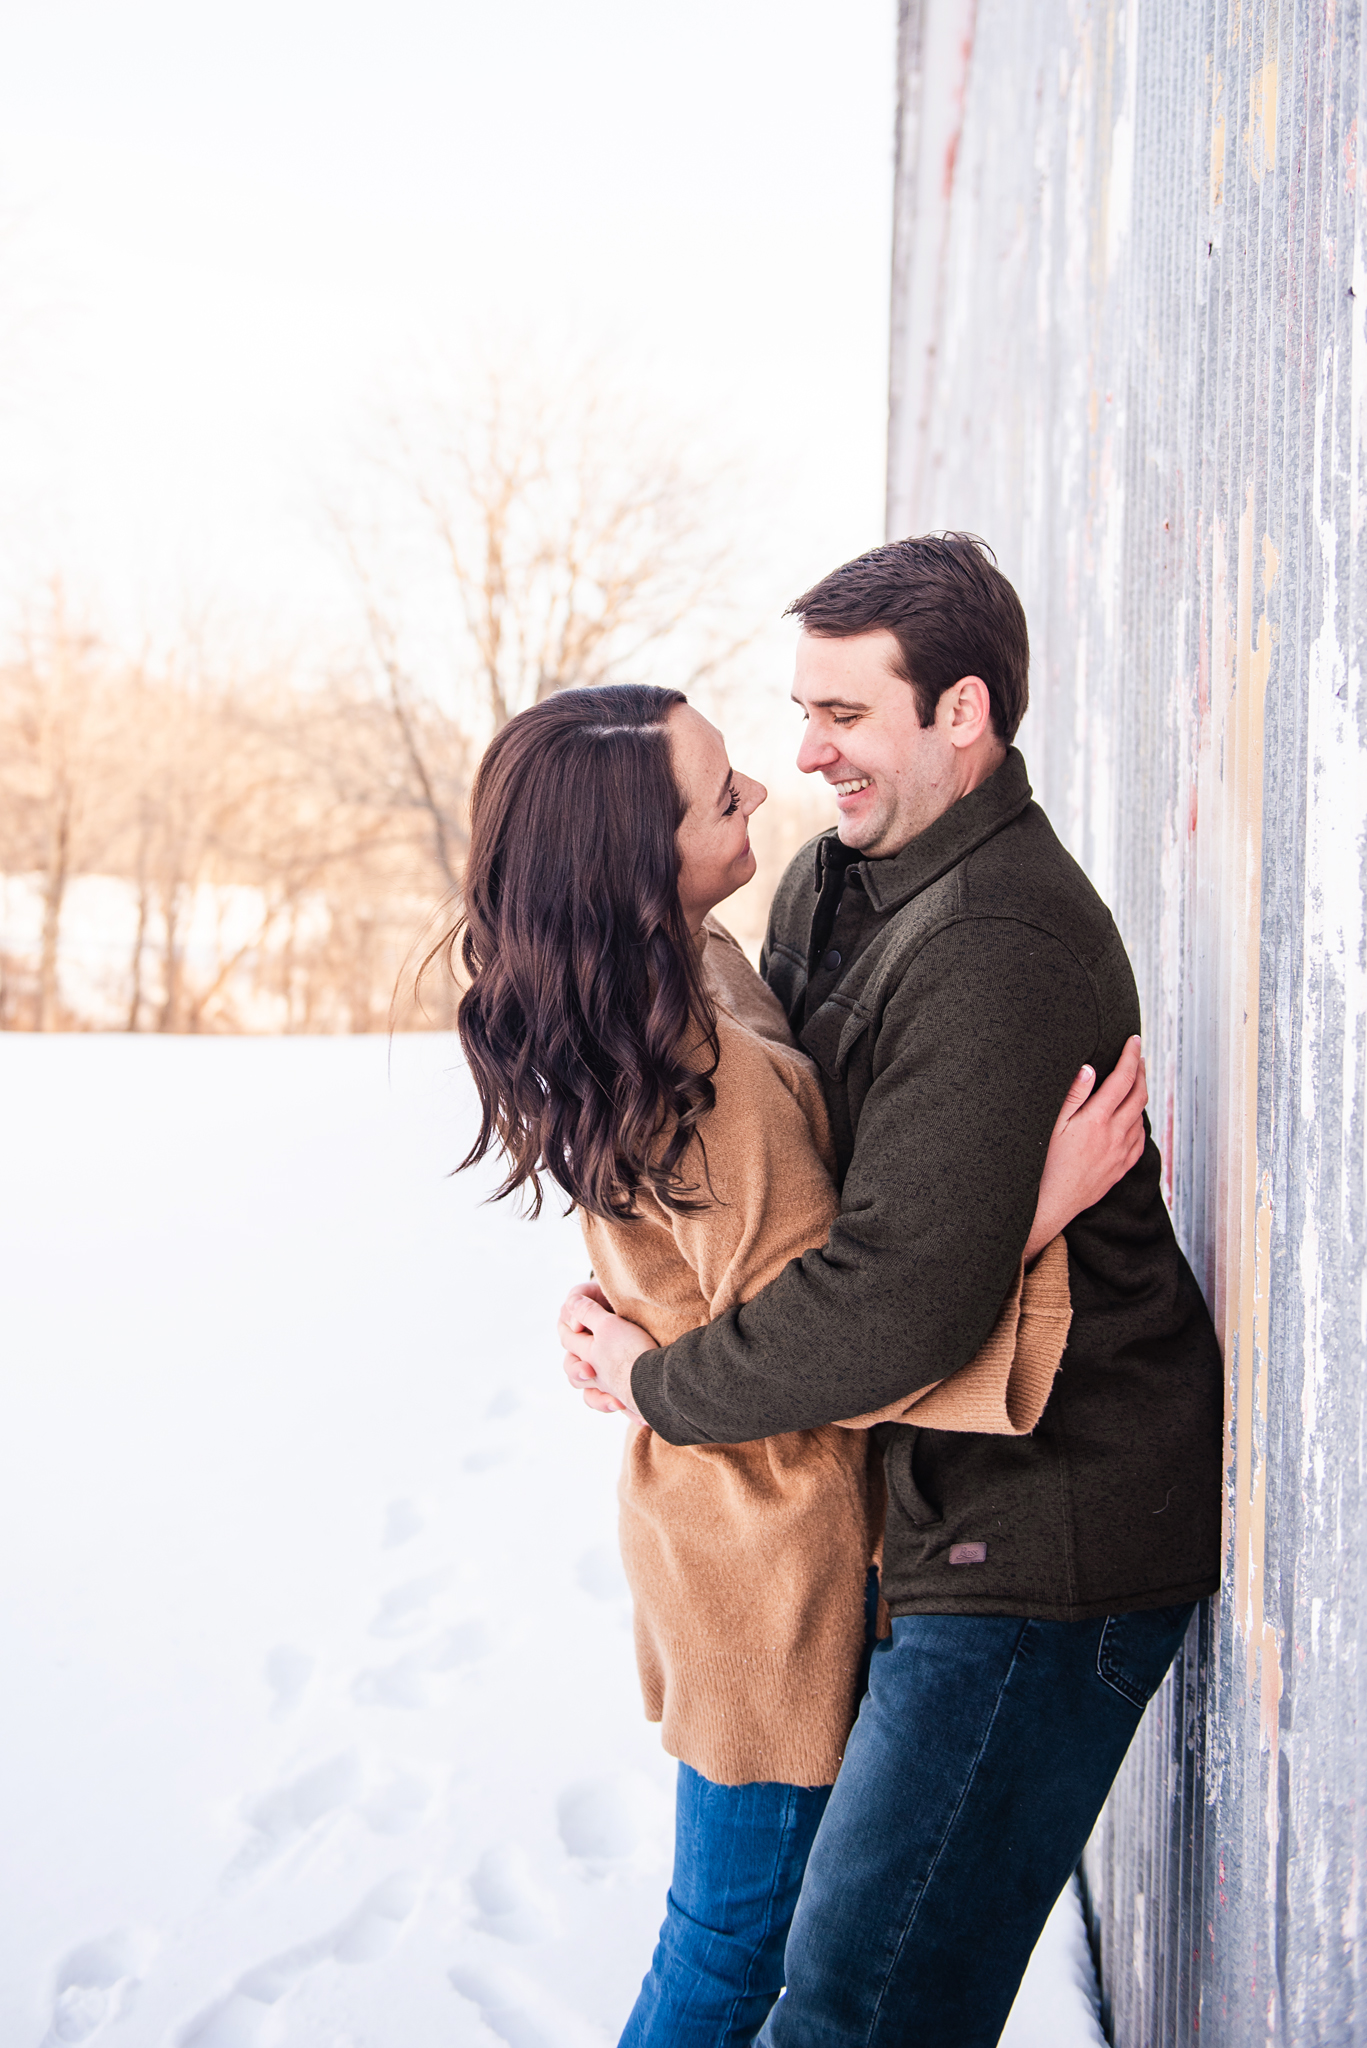 Fallbrook_Central_NY_Engagement_Session_JILL_STUDIO_Rochester_NY_Photographer_DSC_4775.jpg